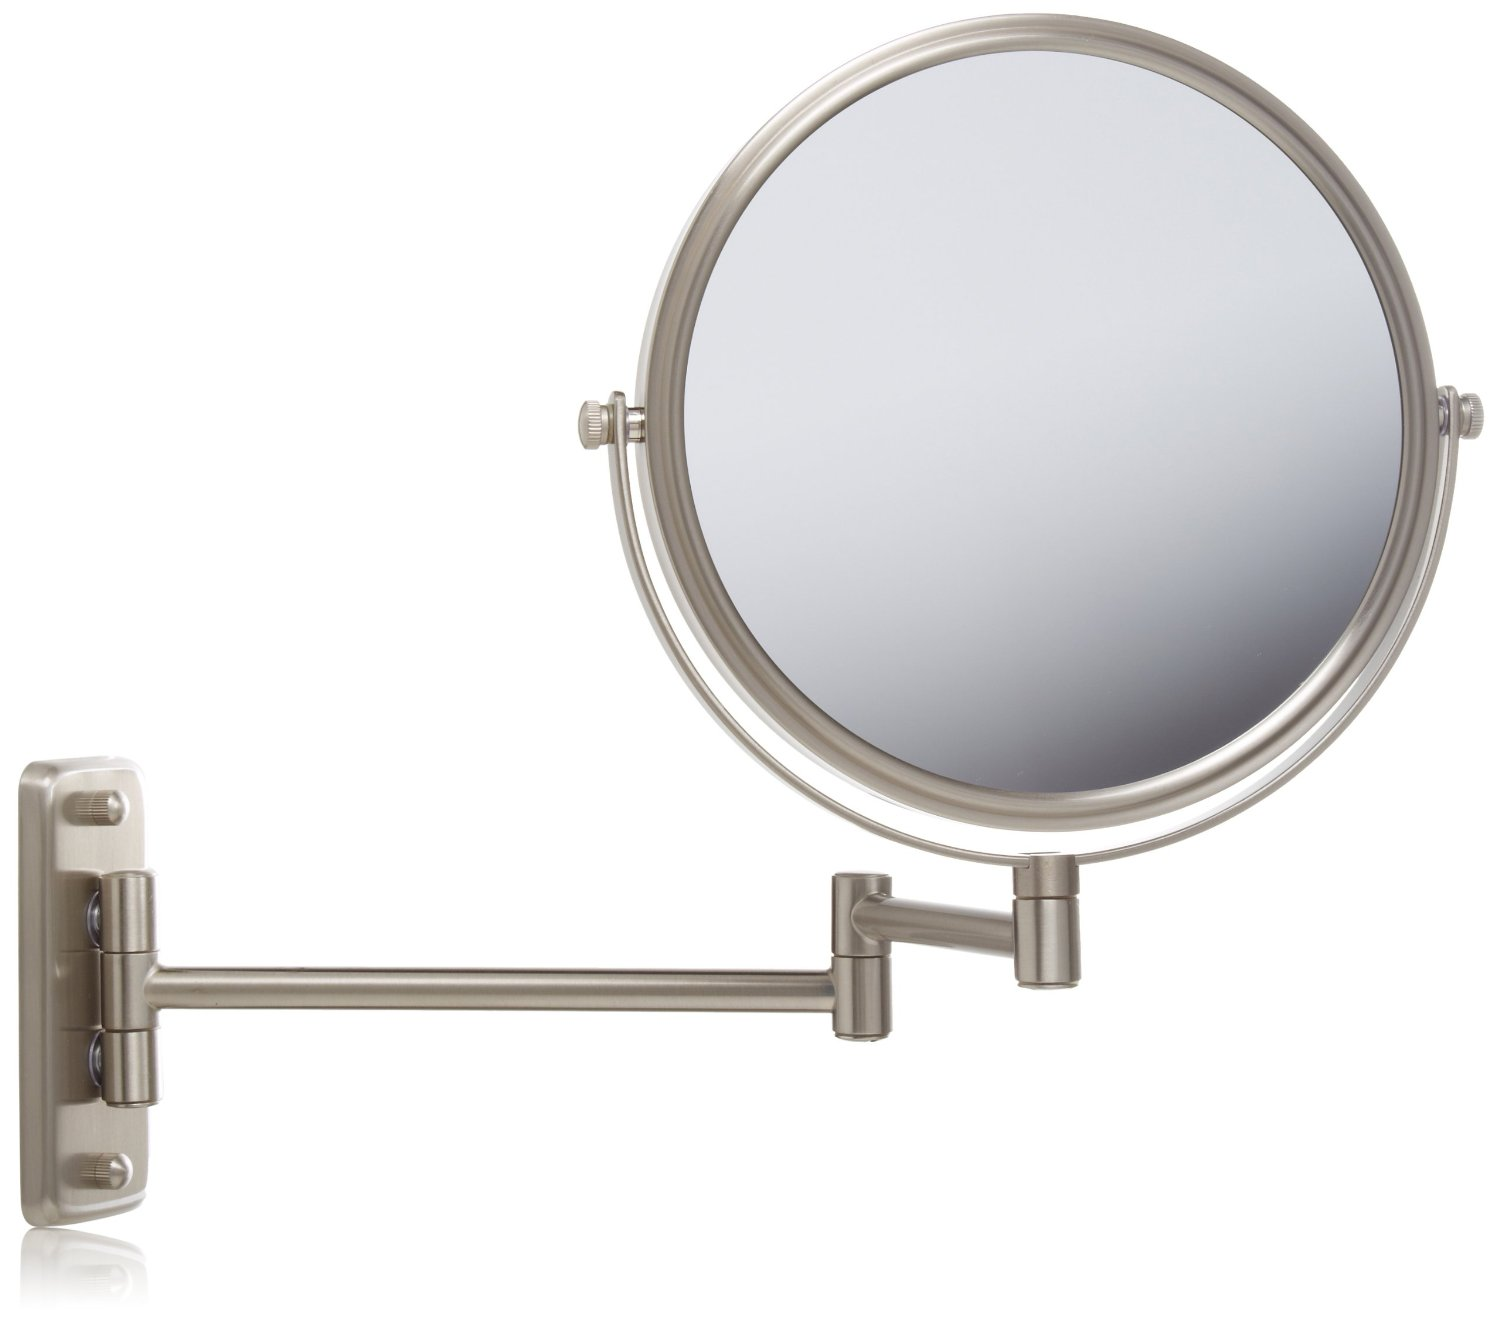 Best Lighted Makeup Mirror | Vanity Makeup Mirror with Lights | Tabletop Mirror